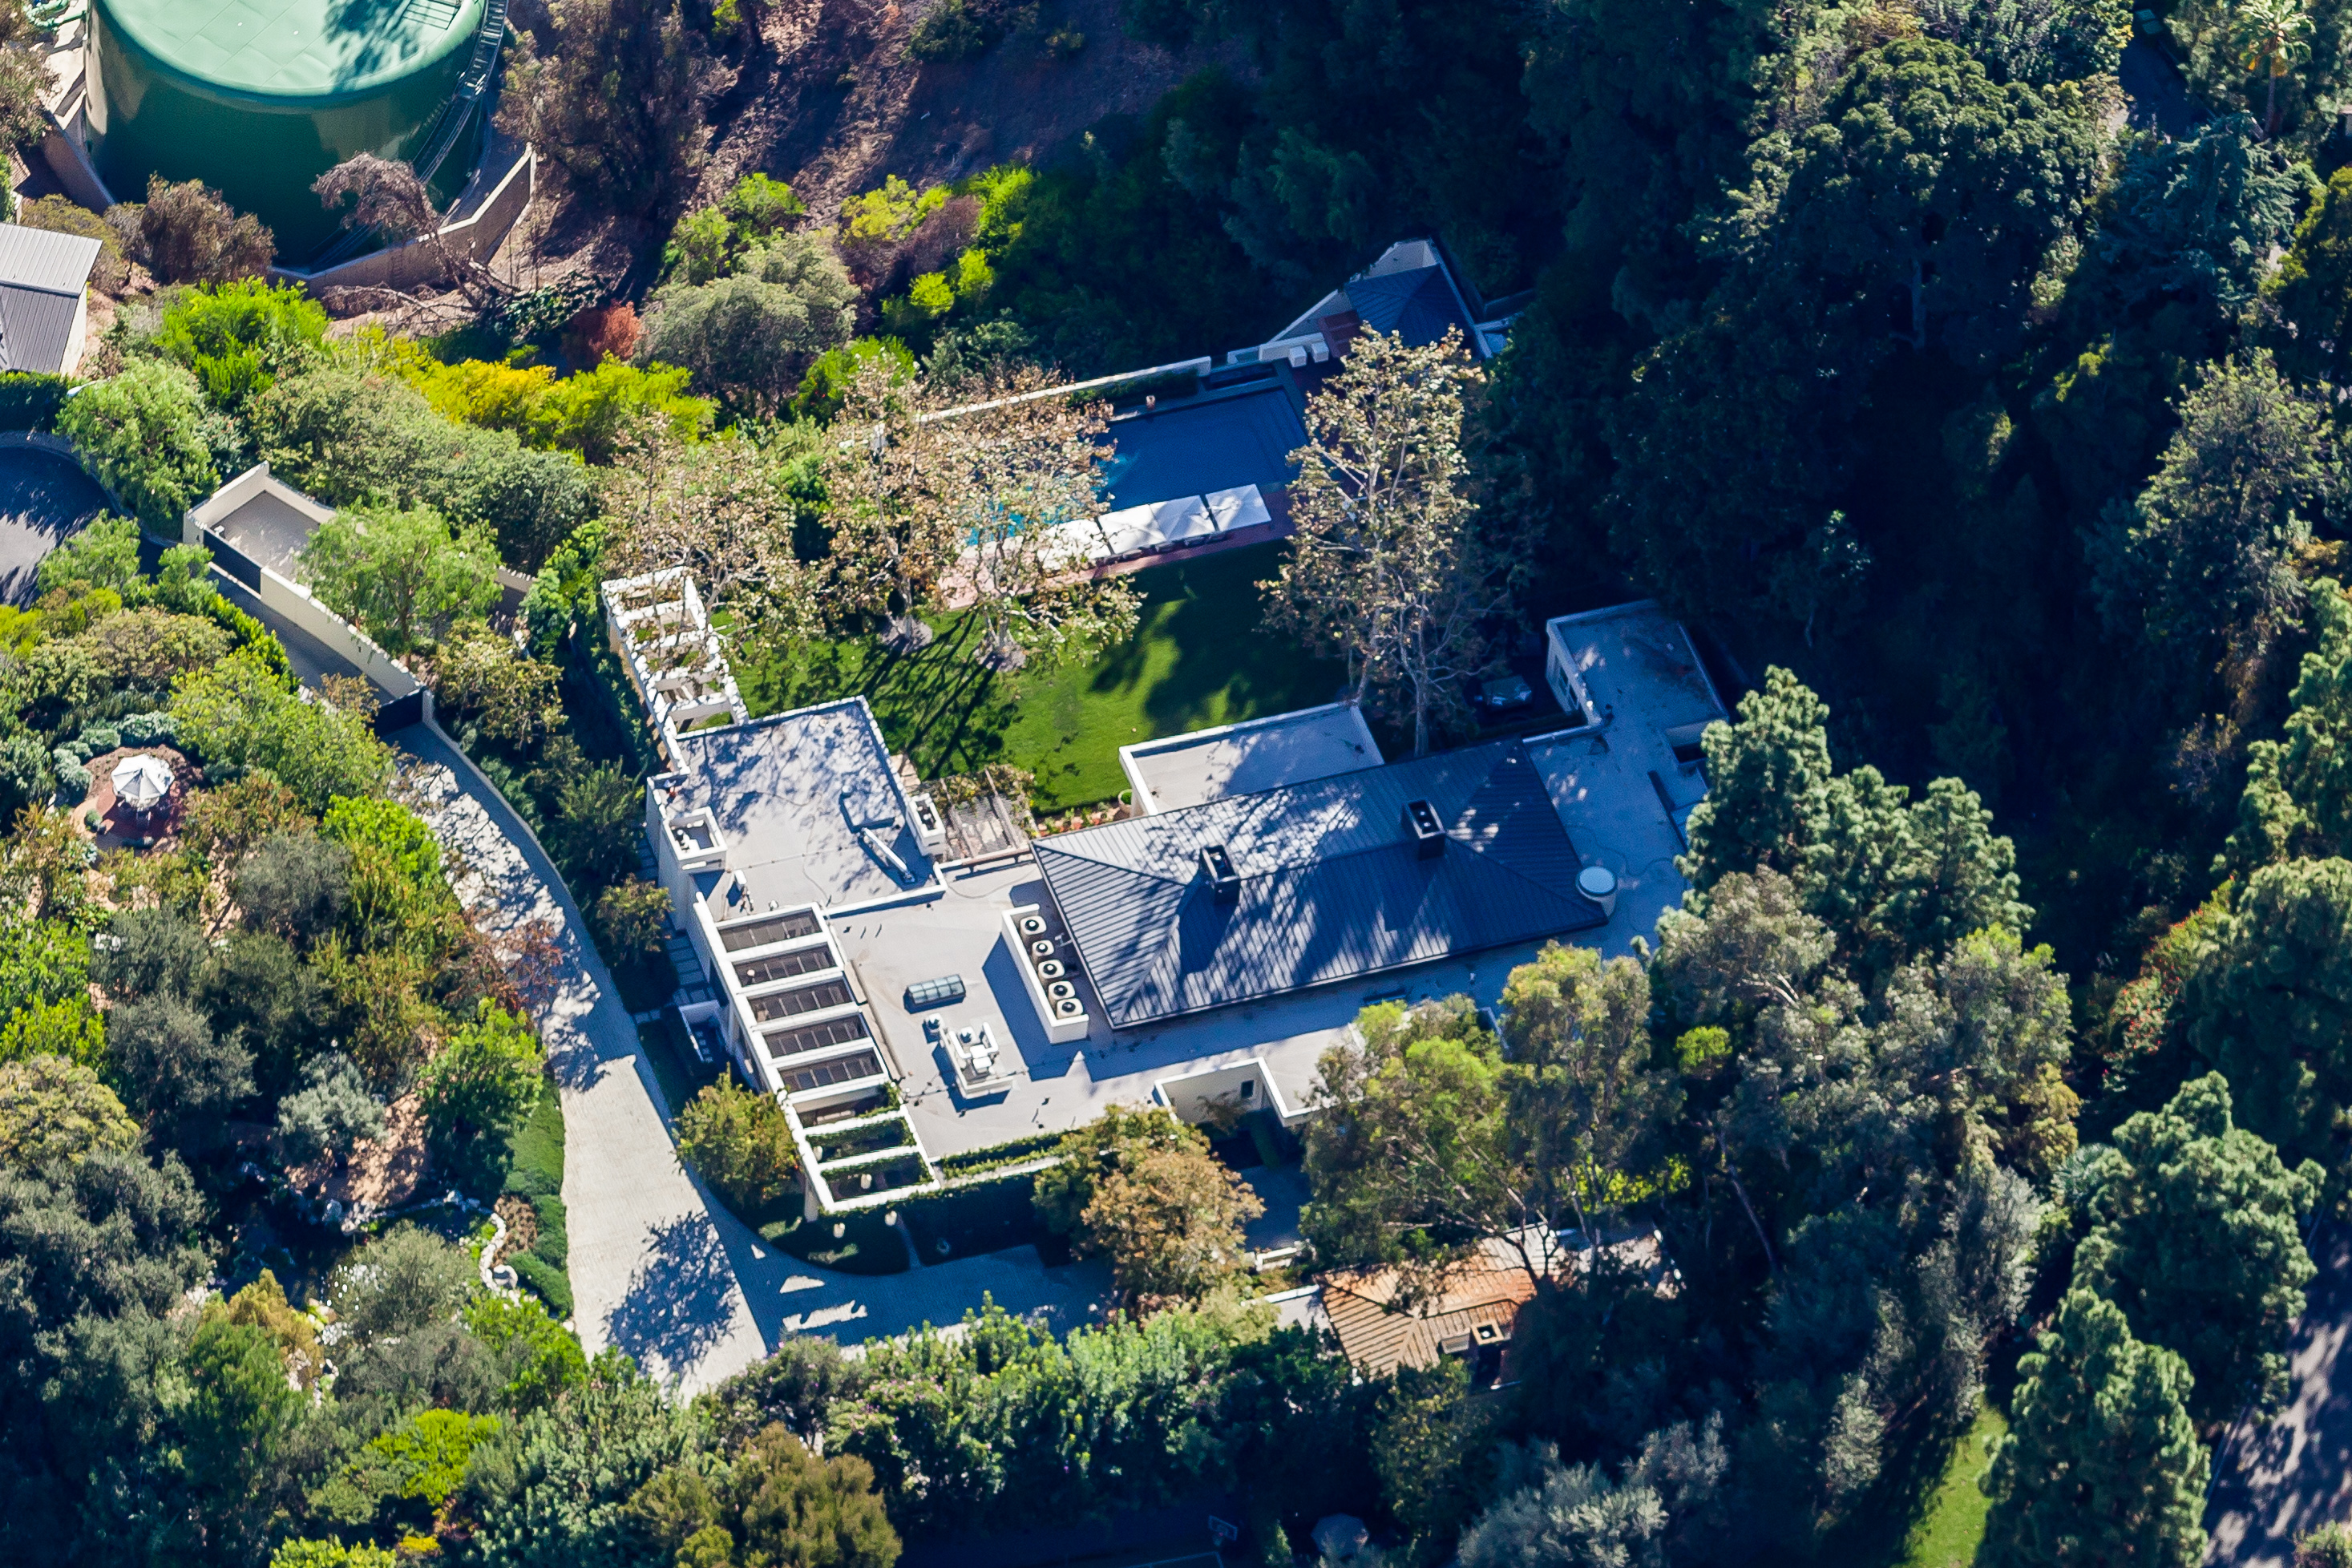 Ellen DeGeneres was the prior owner of Seacrest's Beverly Hills home